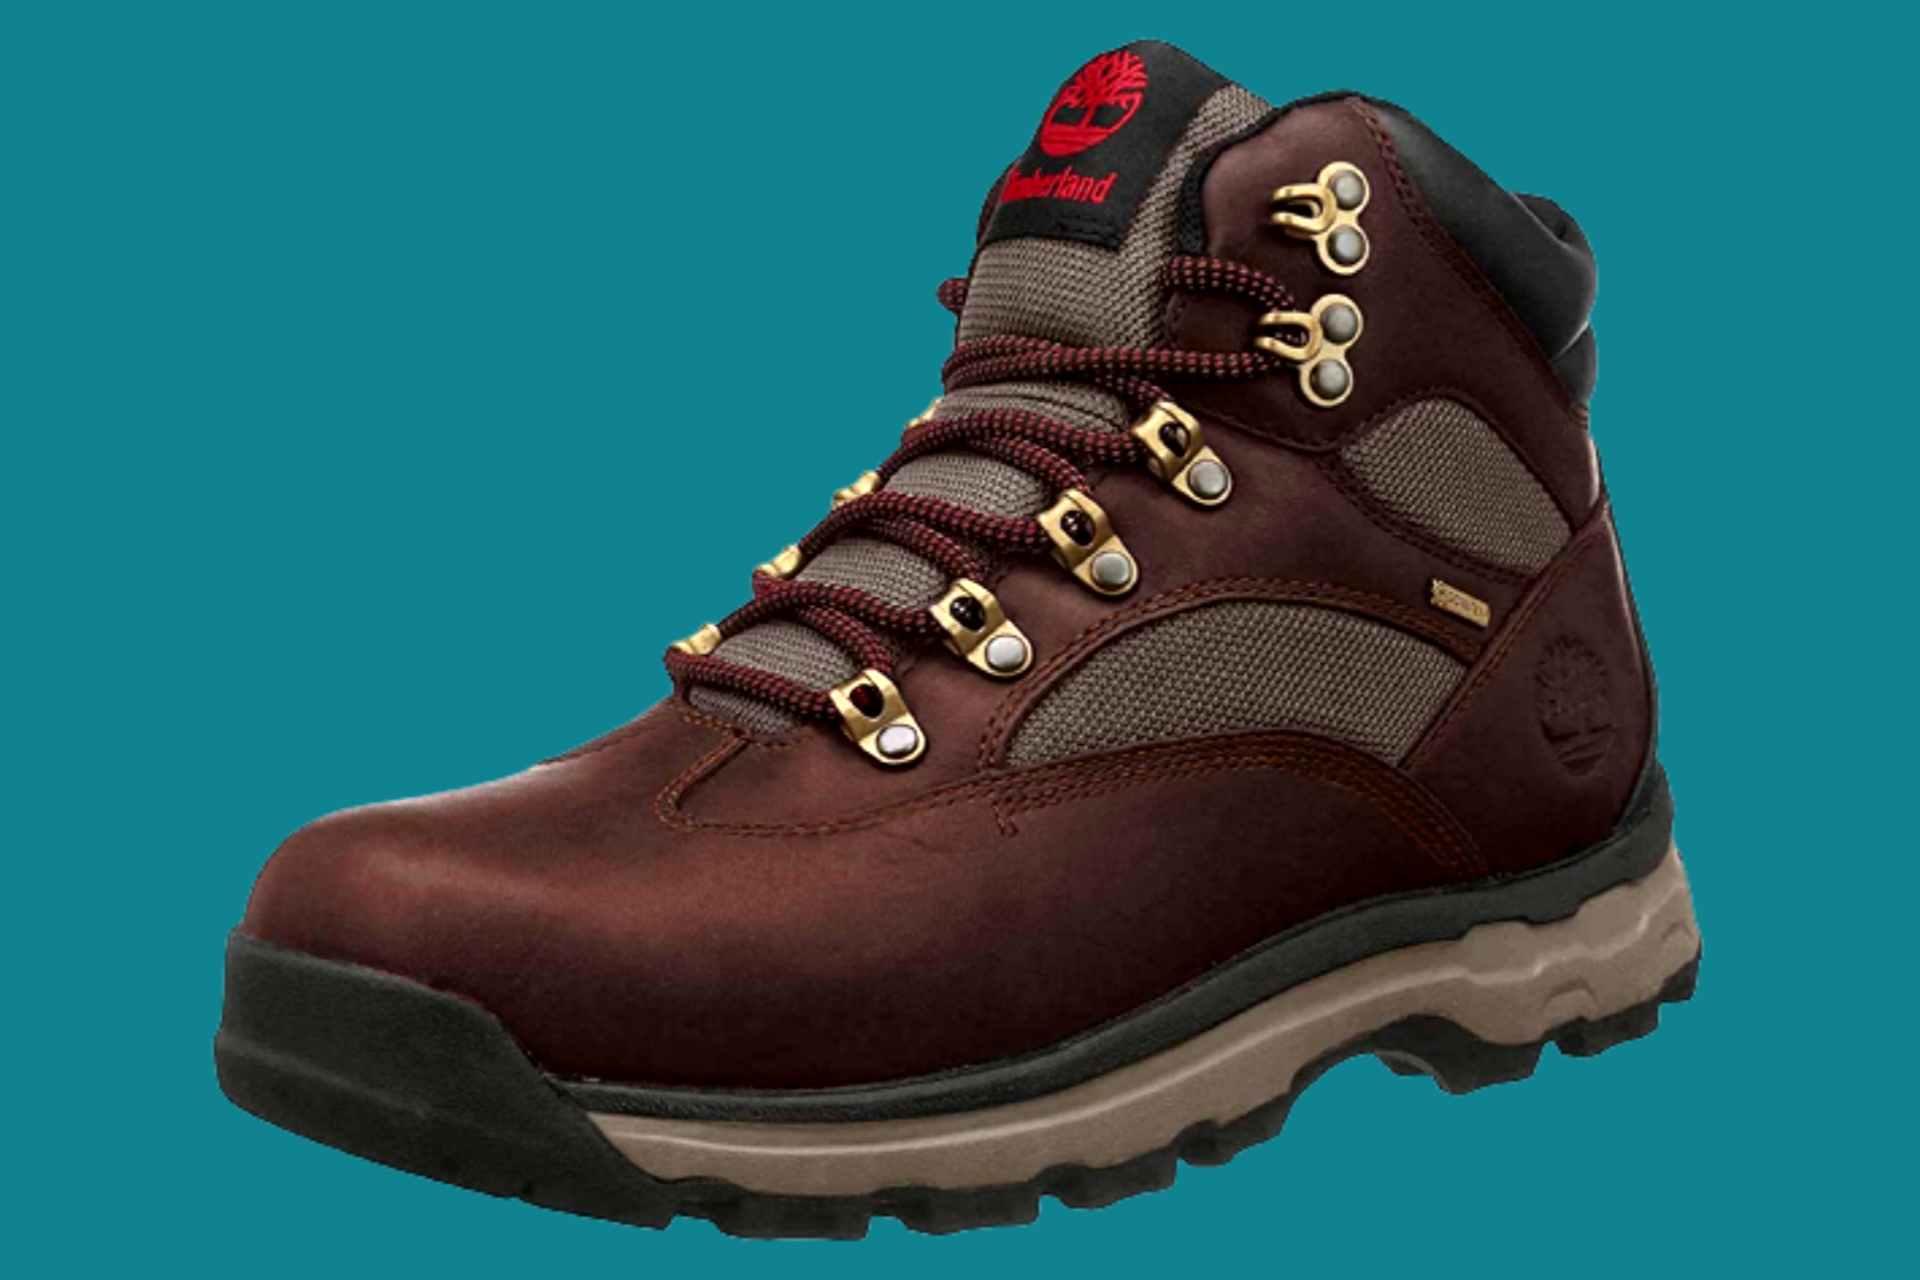 Top-rated Timberland boots for hiking